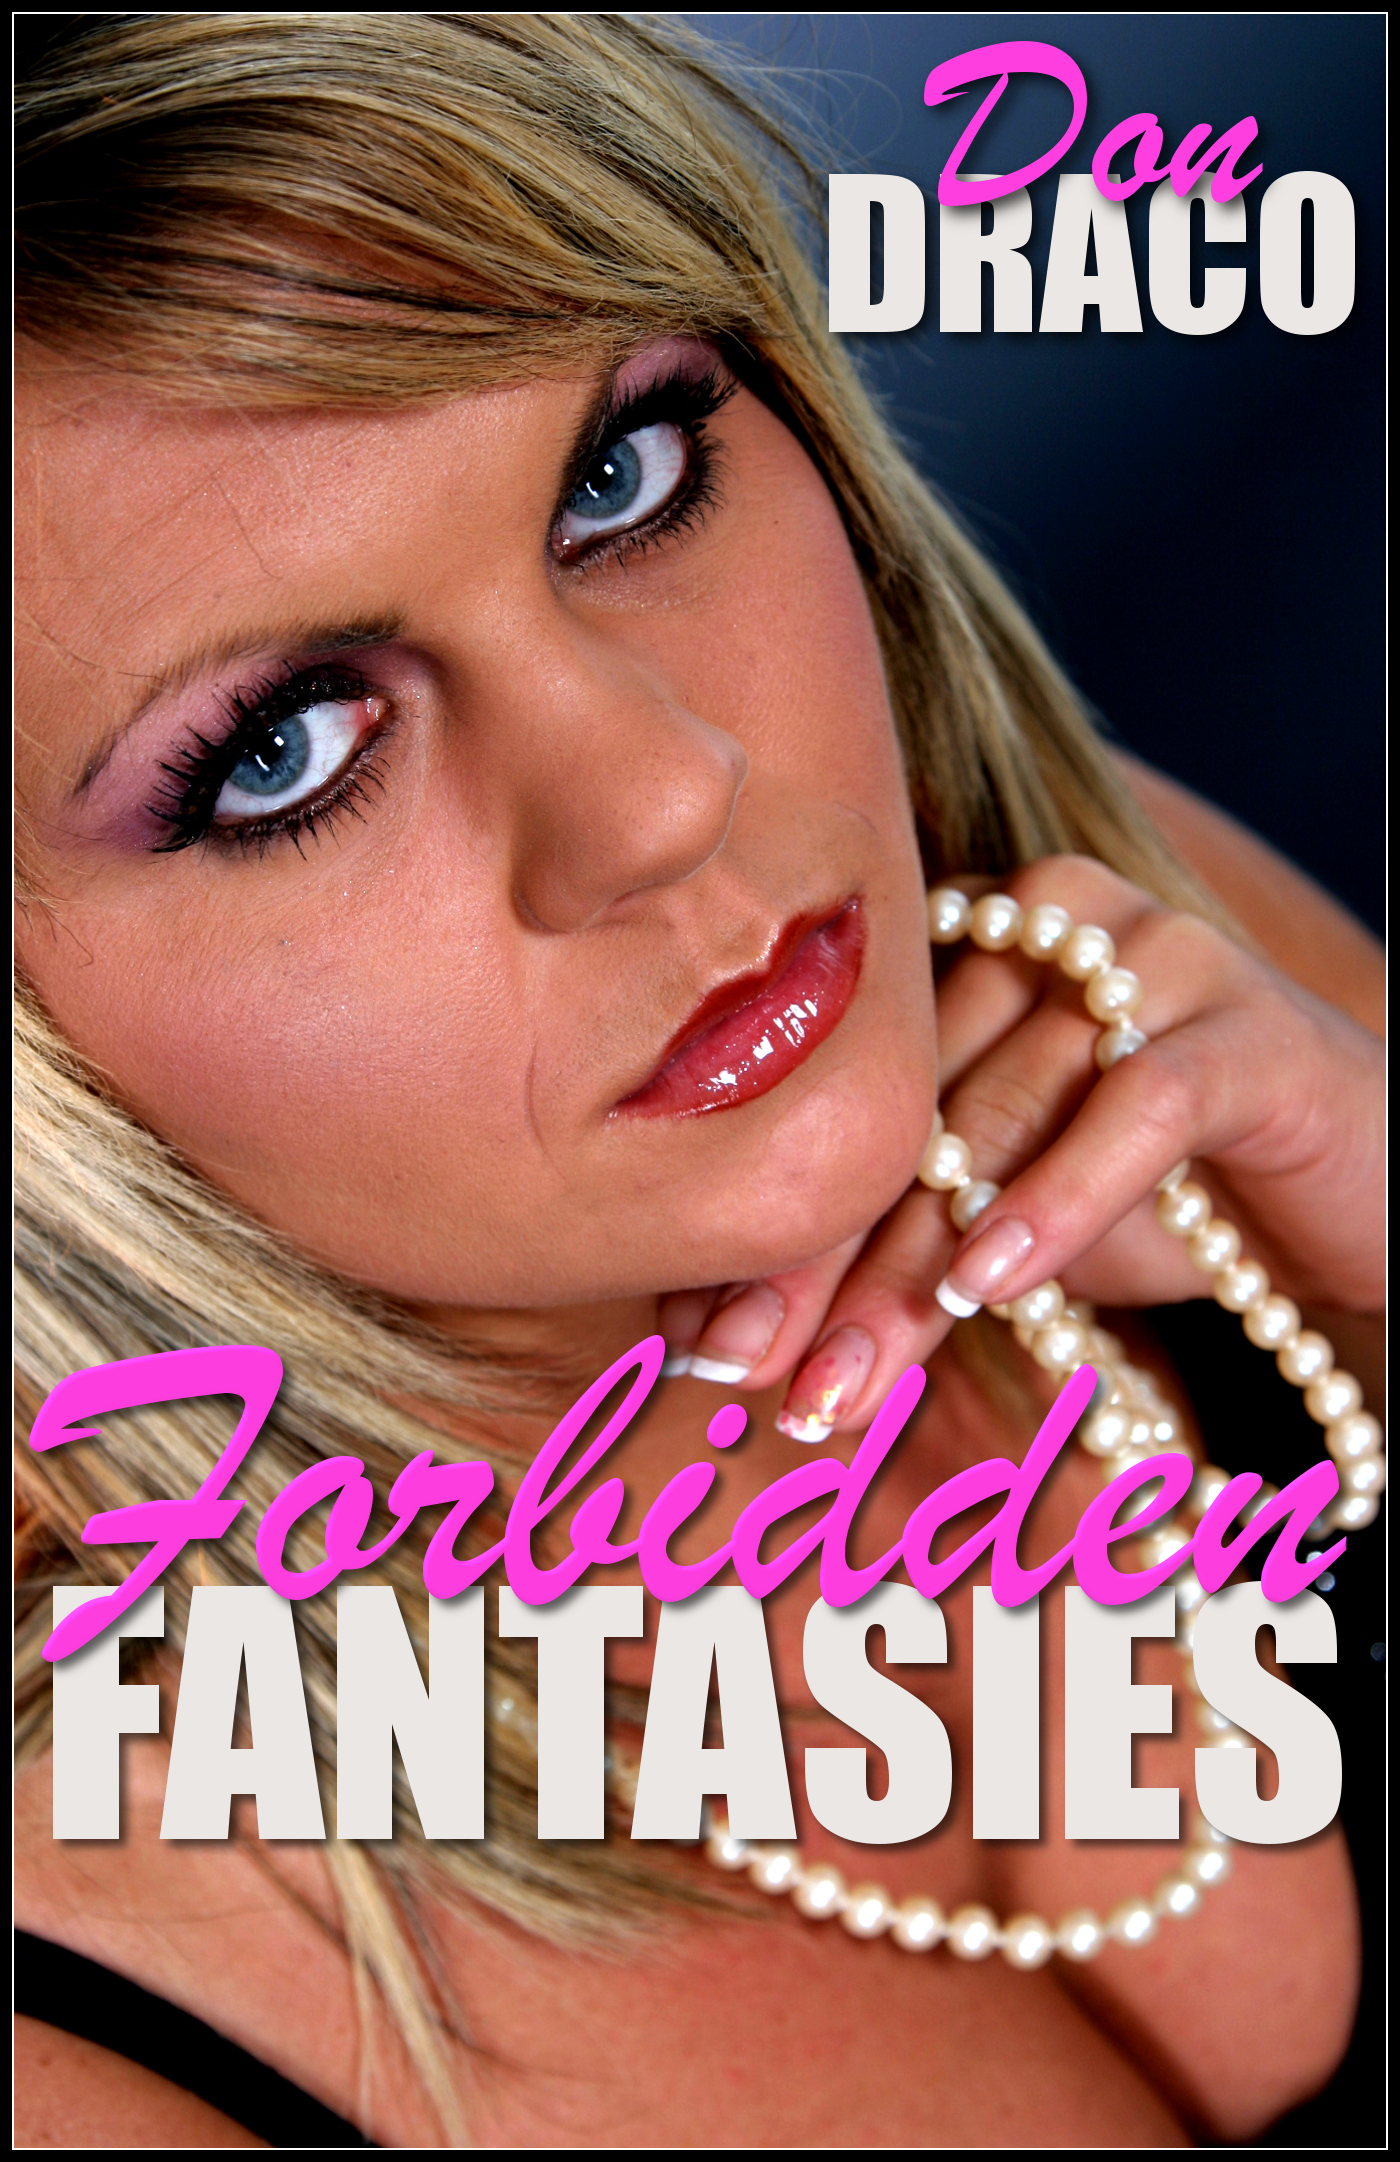 Don Draco - Forbidden Fantasies (3 Story Collection of Taboo Erotica Tales)